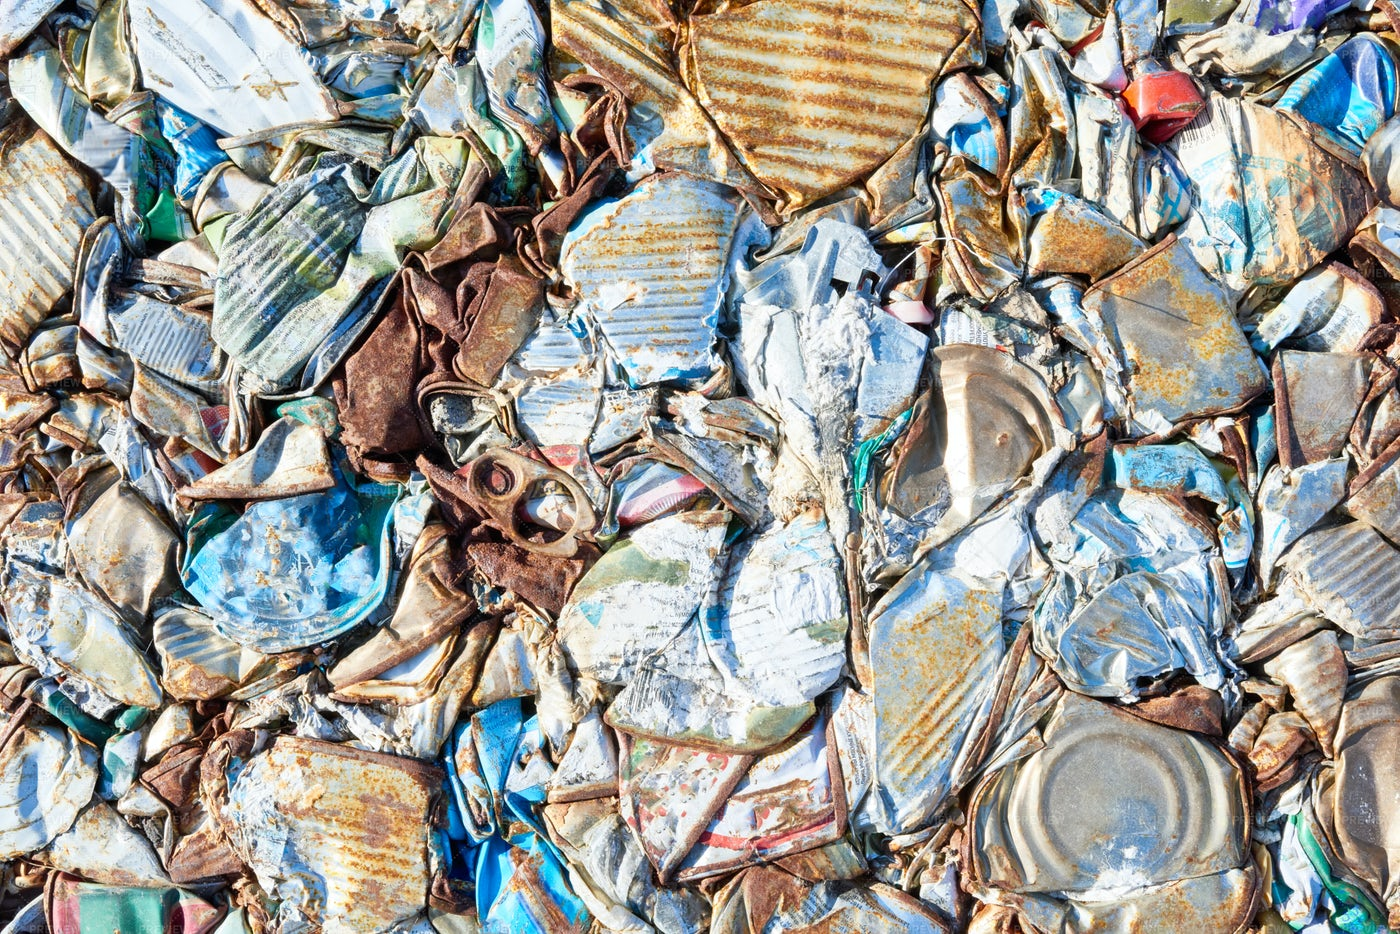 Packed Trash At Waste Processing...: Stock Photos